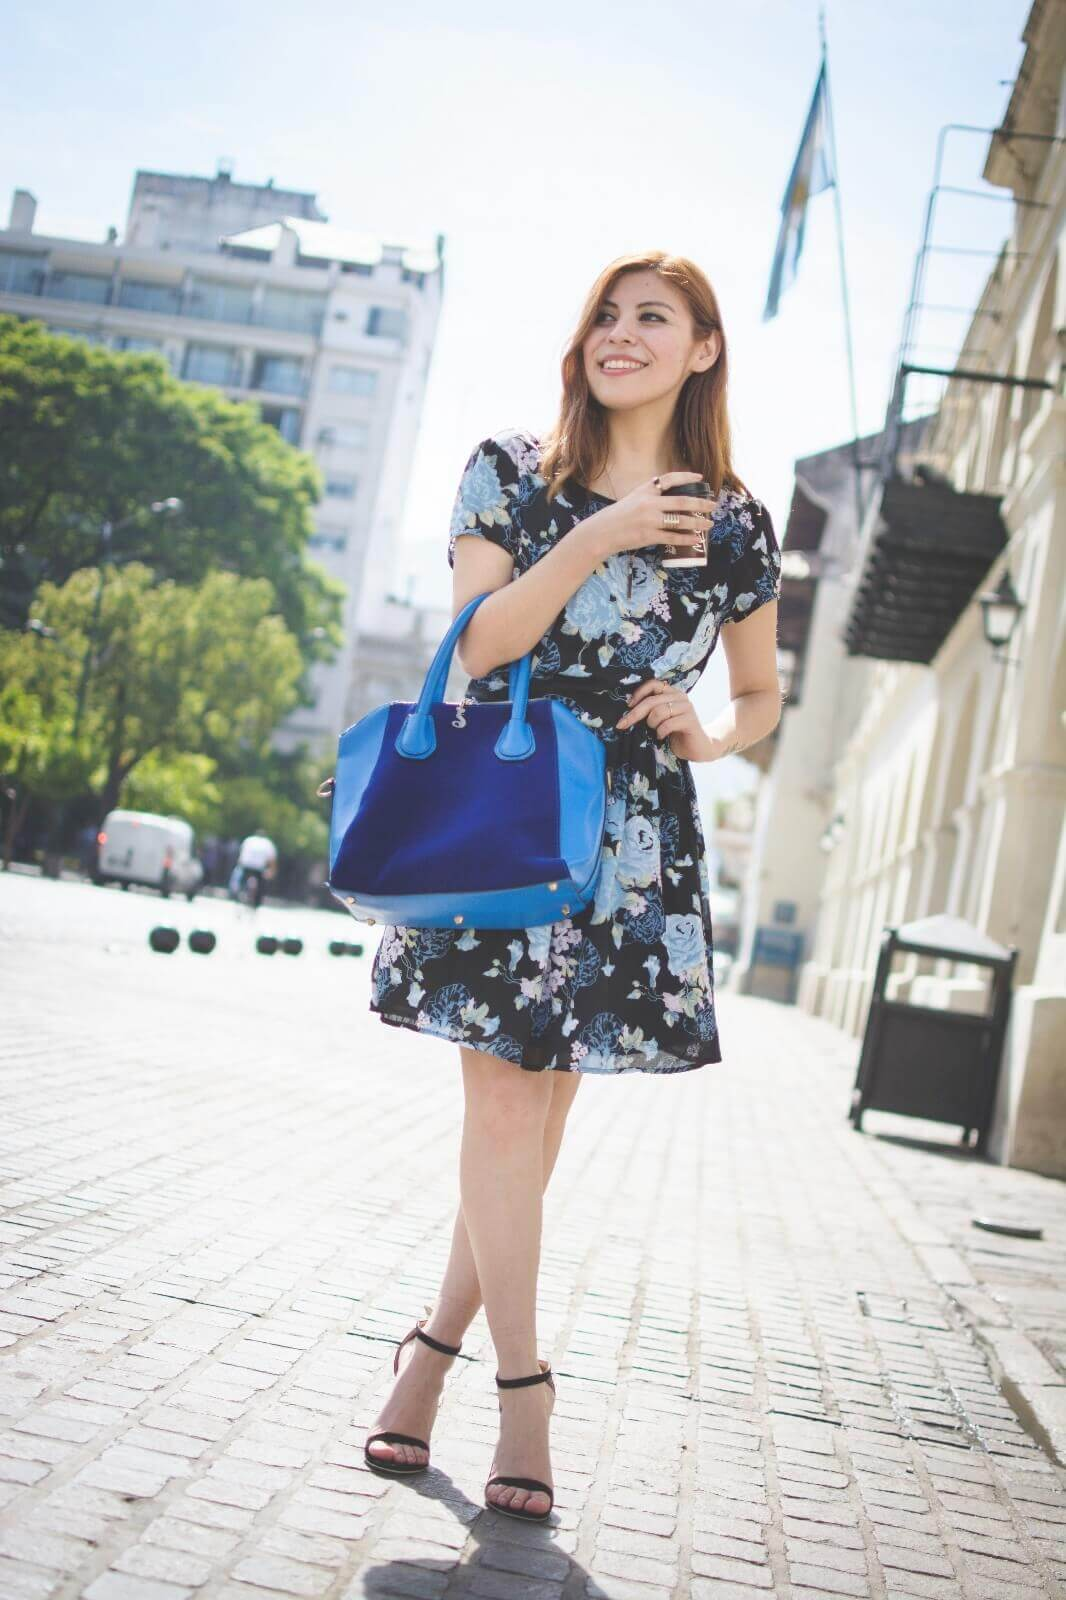 gamiss-black-strappy-sandals-blue-floral-dress-rosegal-cobalt-blue-tote-bag-deborah-ferrero-style-by-deb14